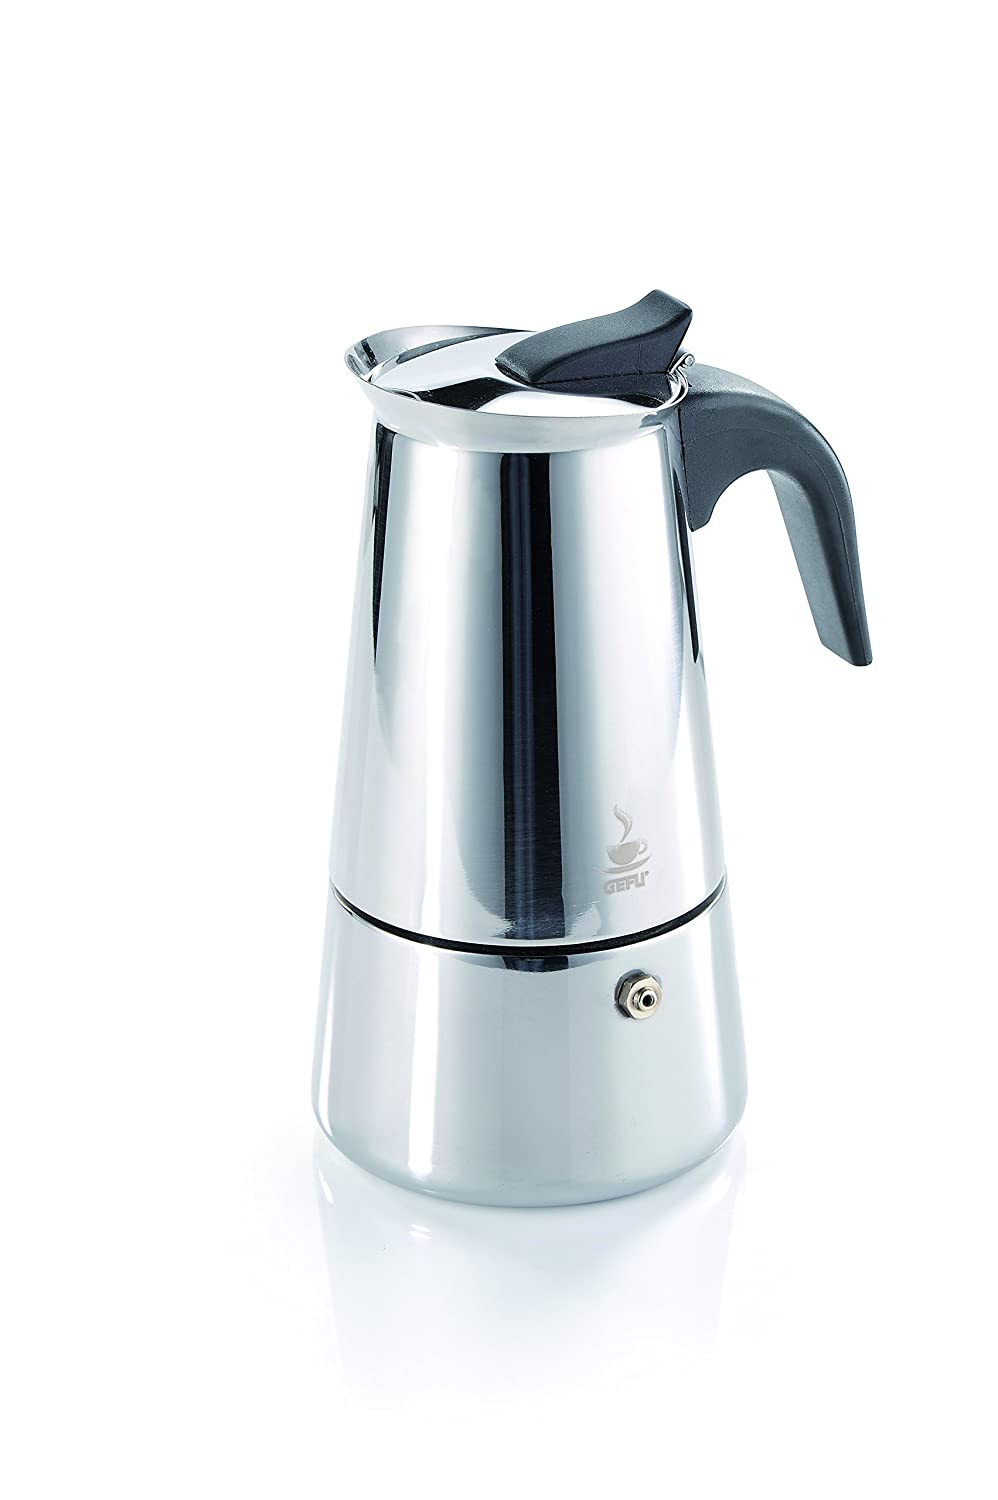 sale retailer 9680f 7326b Gefu 16150 Caffettiera Emilio, 4 tazze  Amazon.it  Casa e cucina